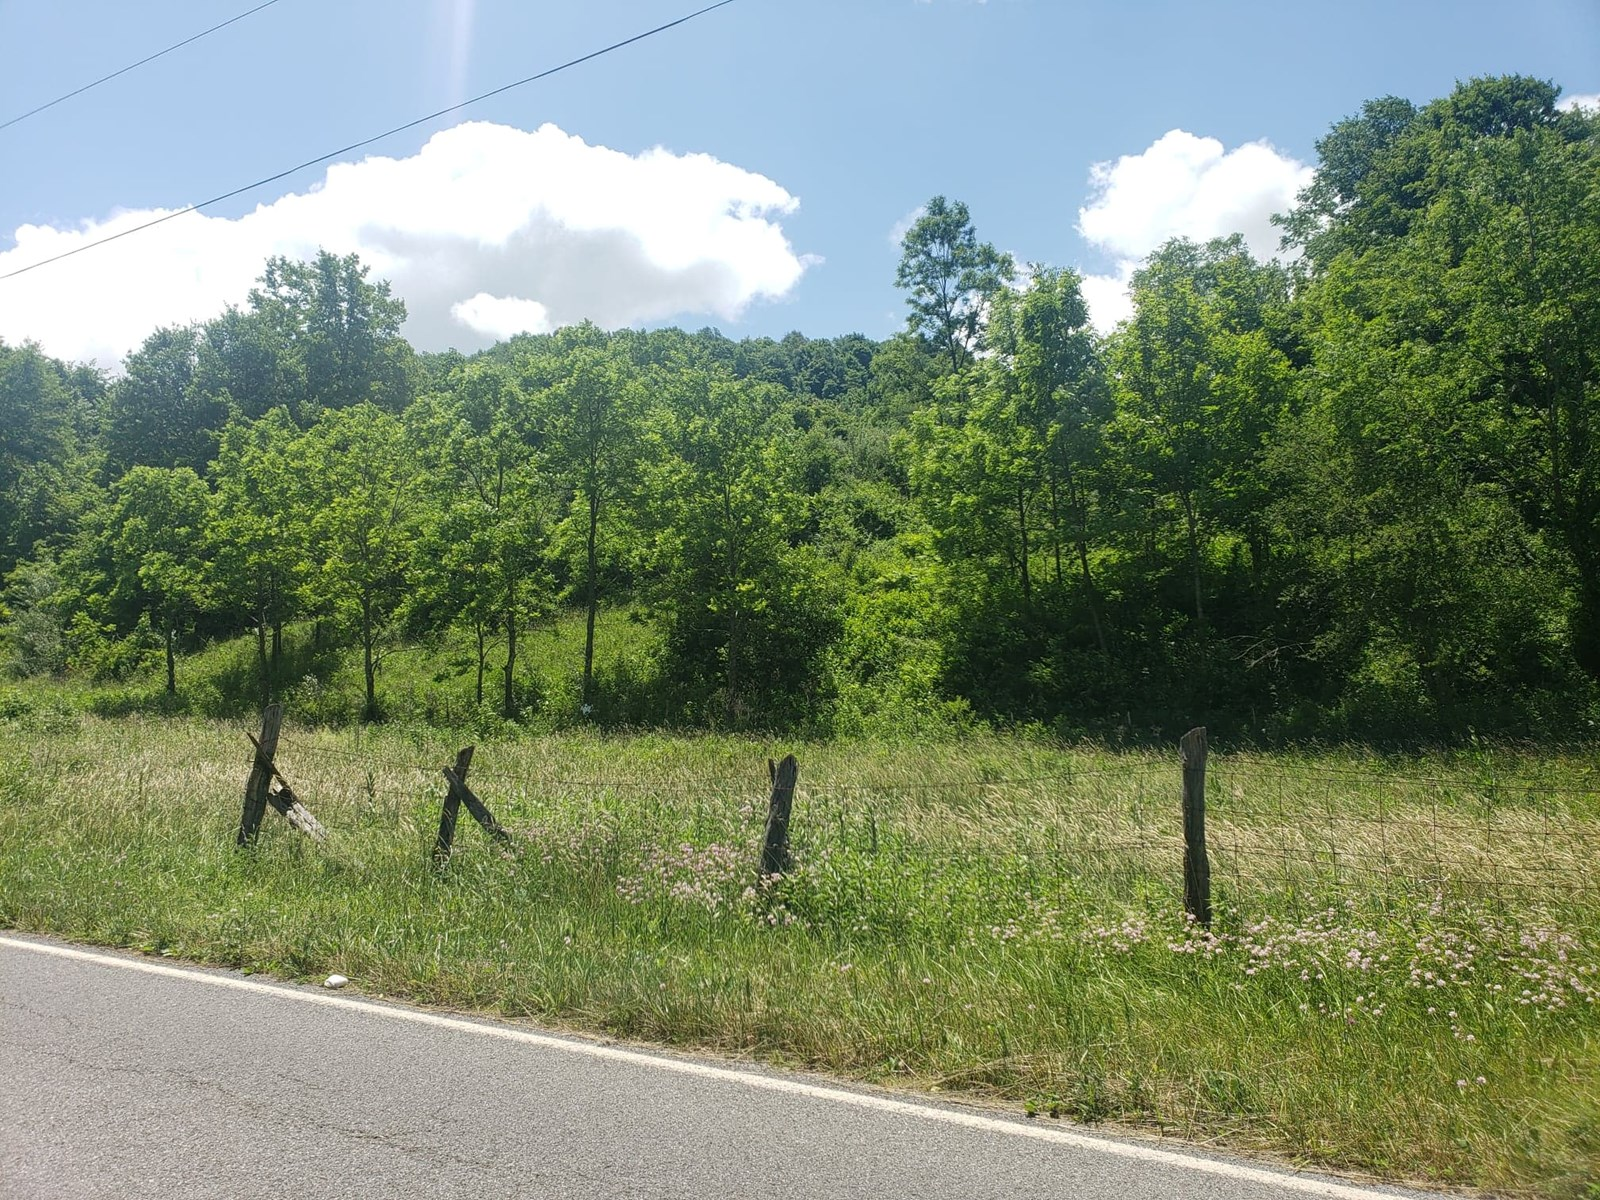 23 Acres Recreational Land in Cavitts Creek Tazewell, VA